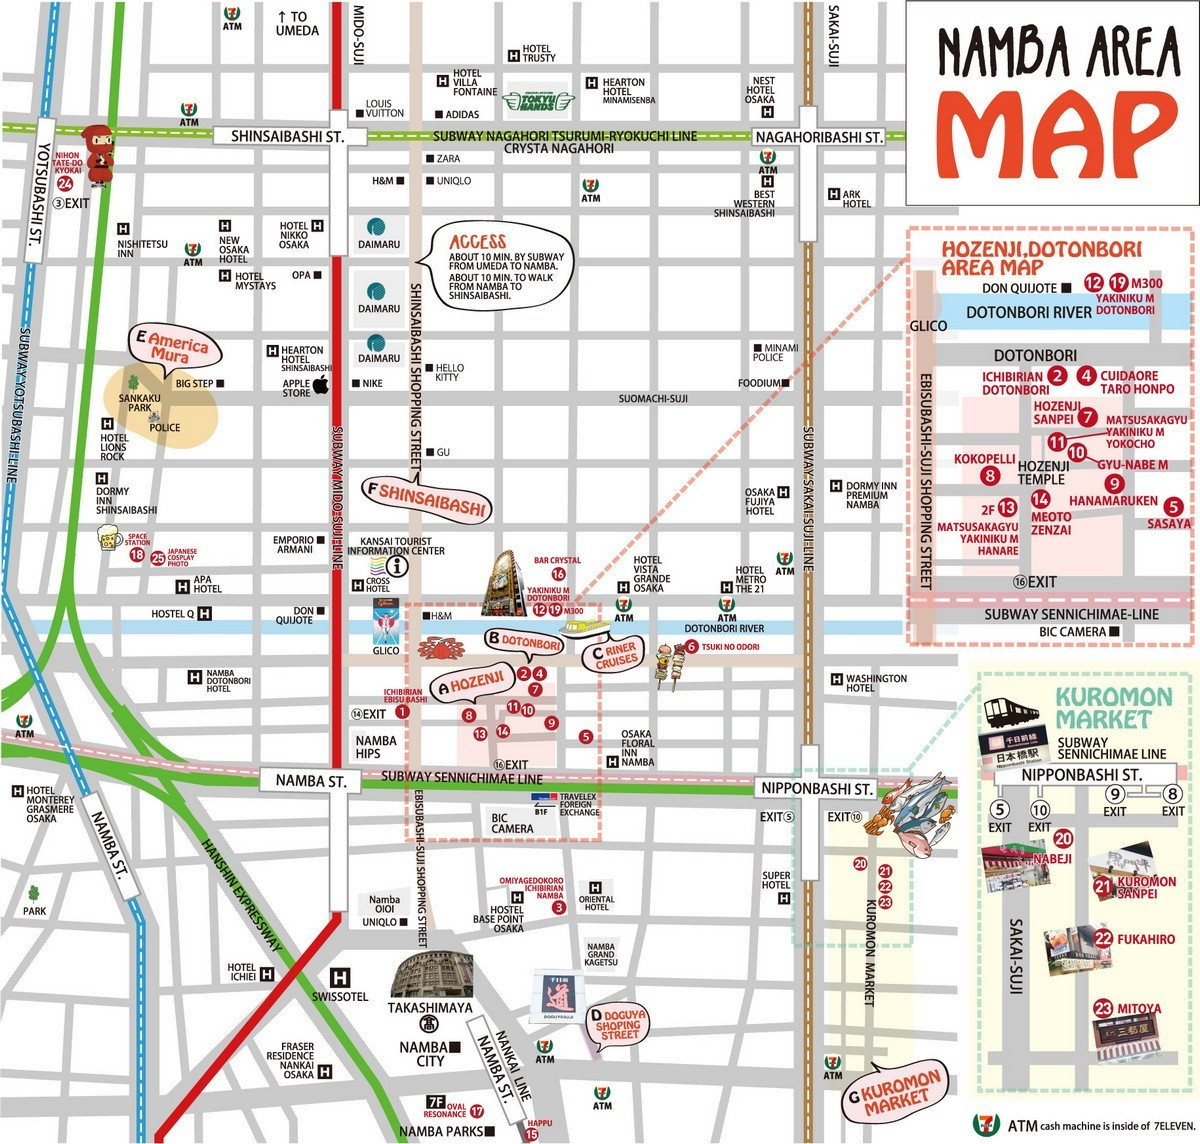 namba area map